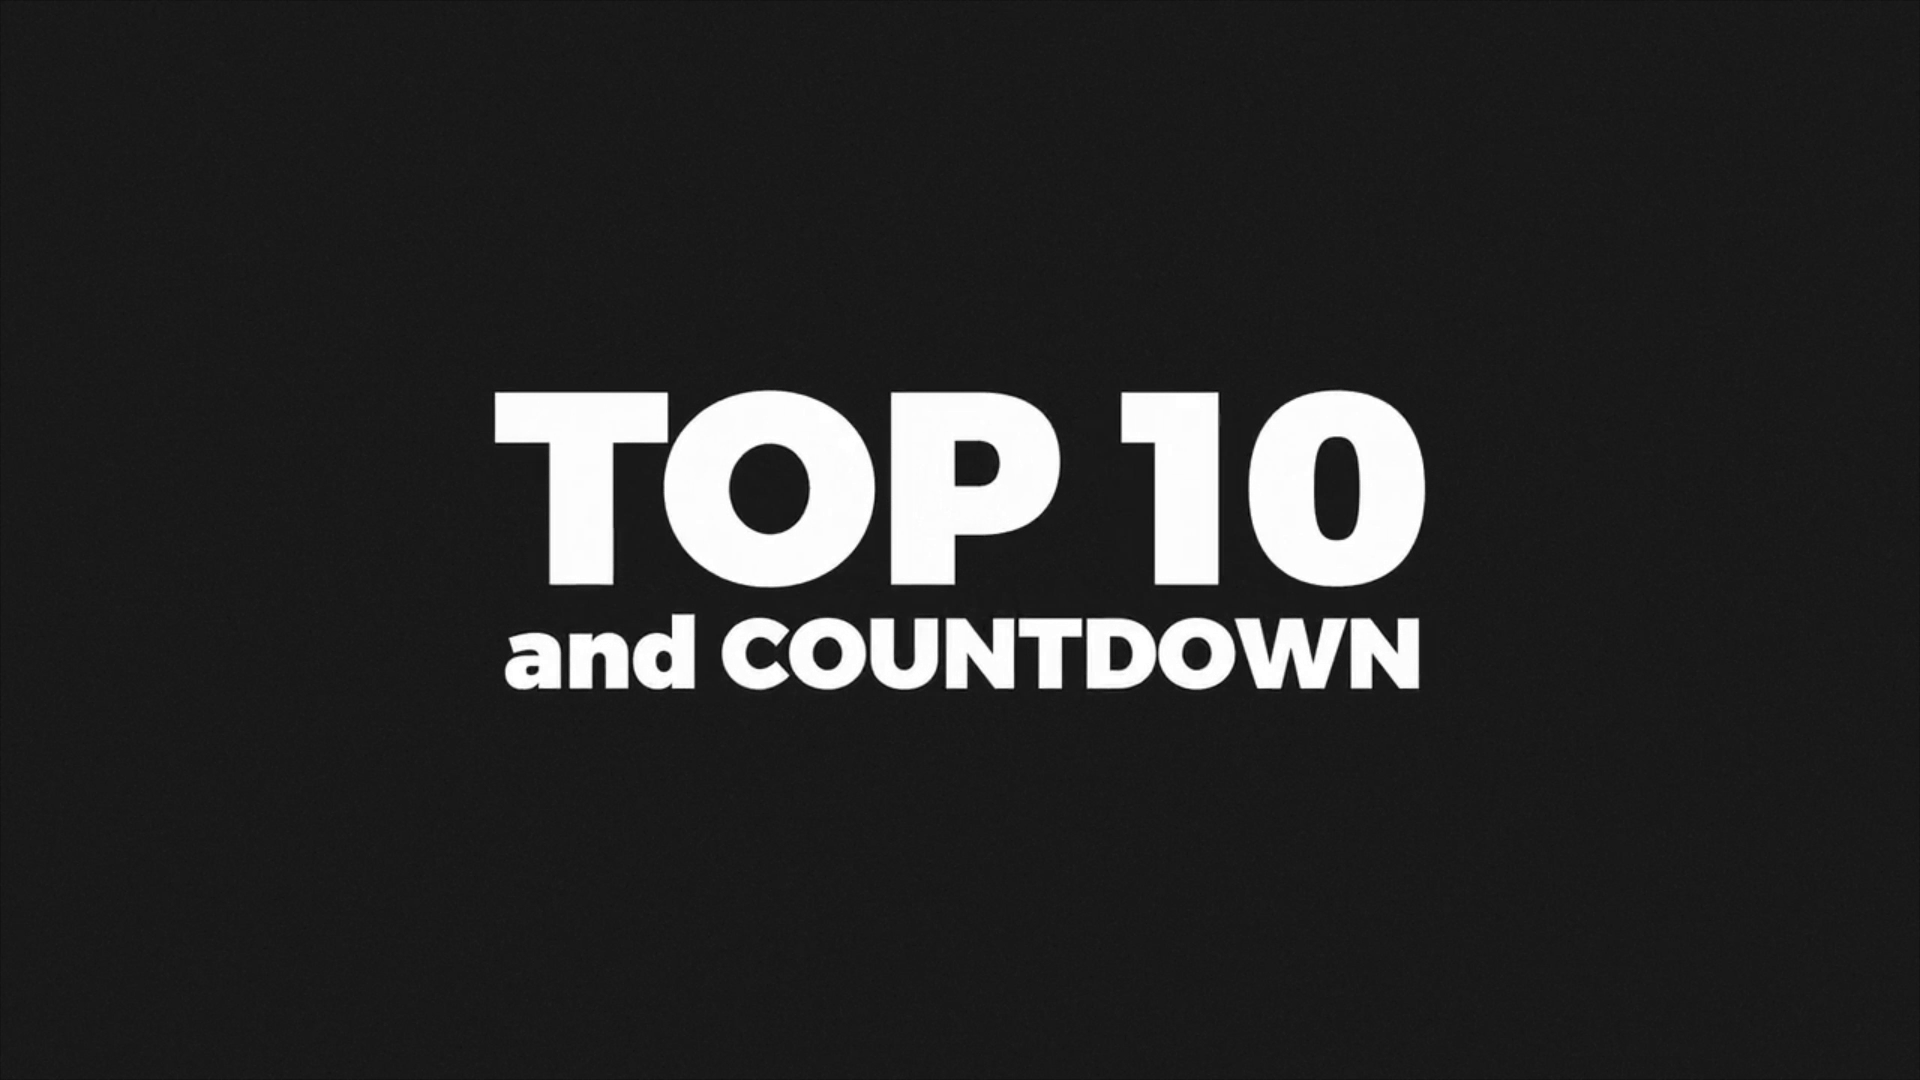 Top 10 Broadcast Package and Countdown